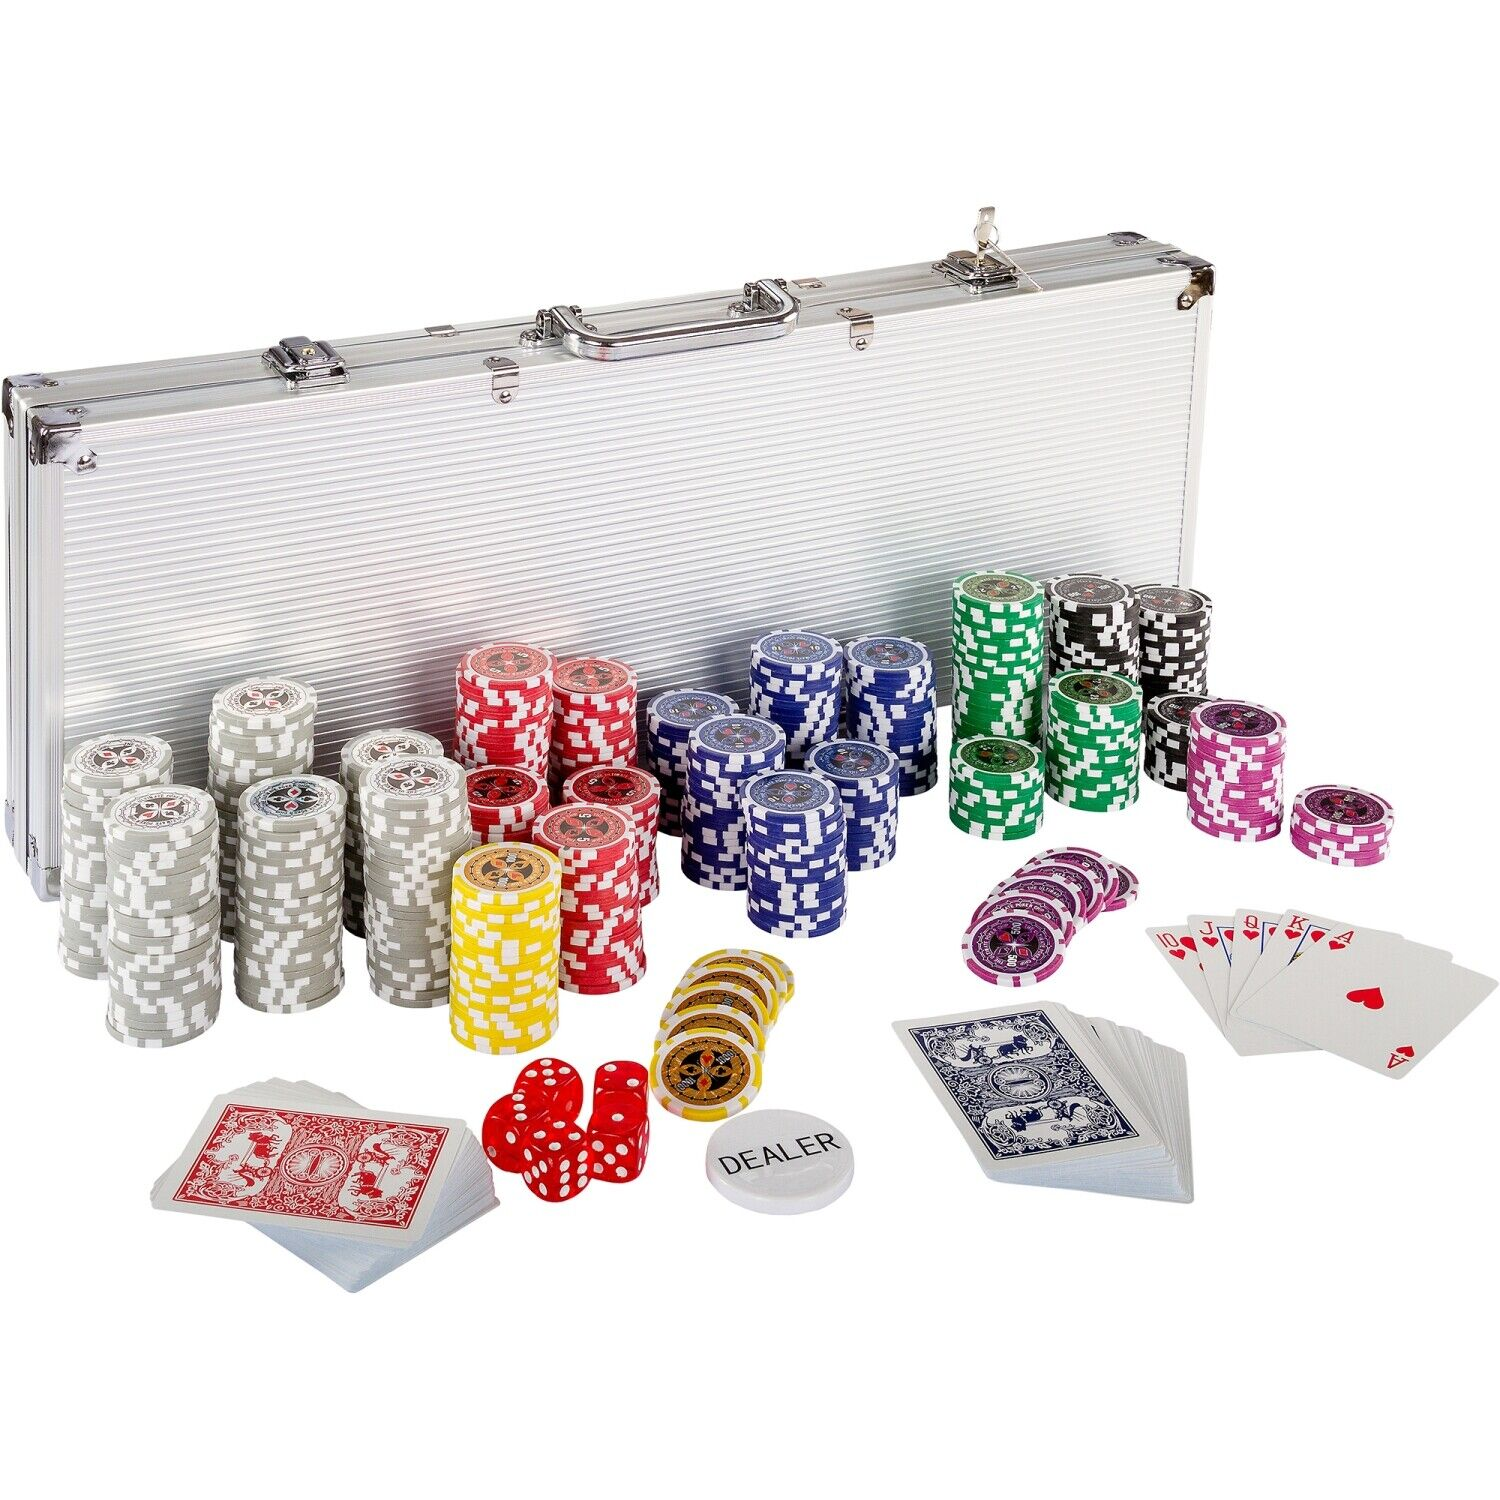 pokerkoffer pokerset poker set laser pokerchips 500 chips alu koffer jetons eur 34 99. Black Bedroom Furniture Sets. Home Design Ideas